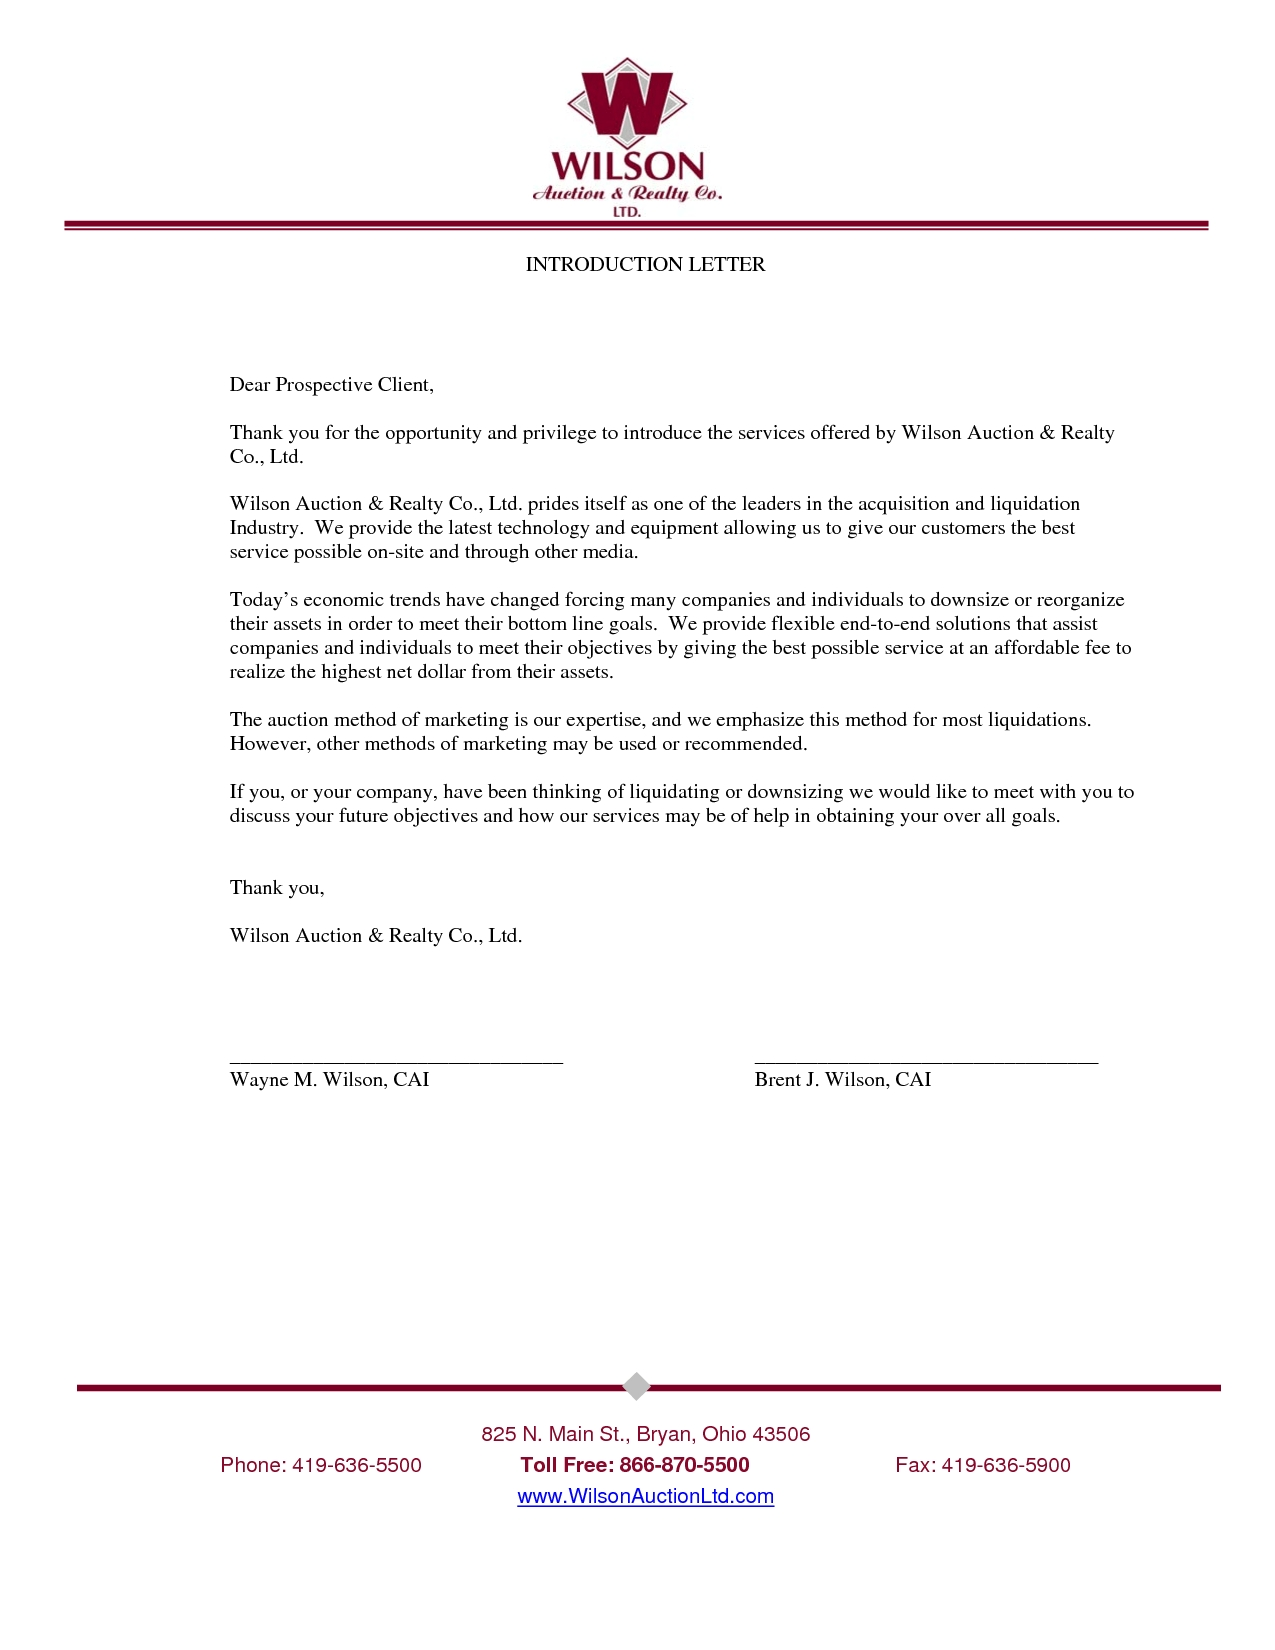 business introduction letter templates free – elrey de bodas